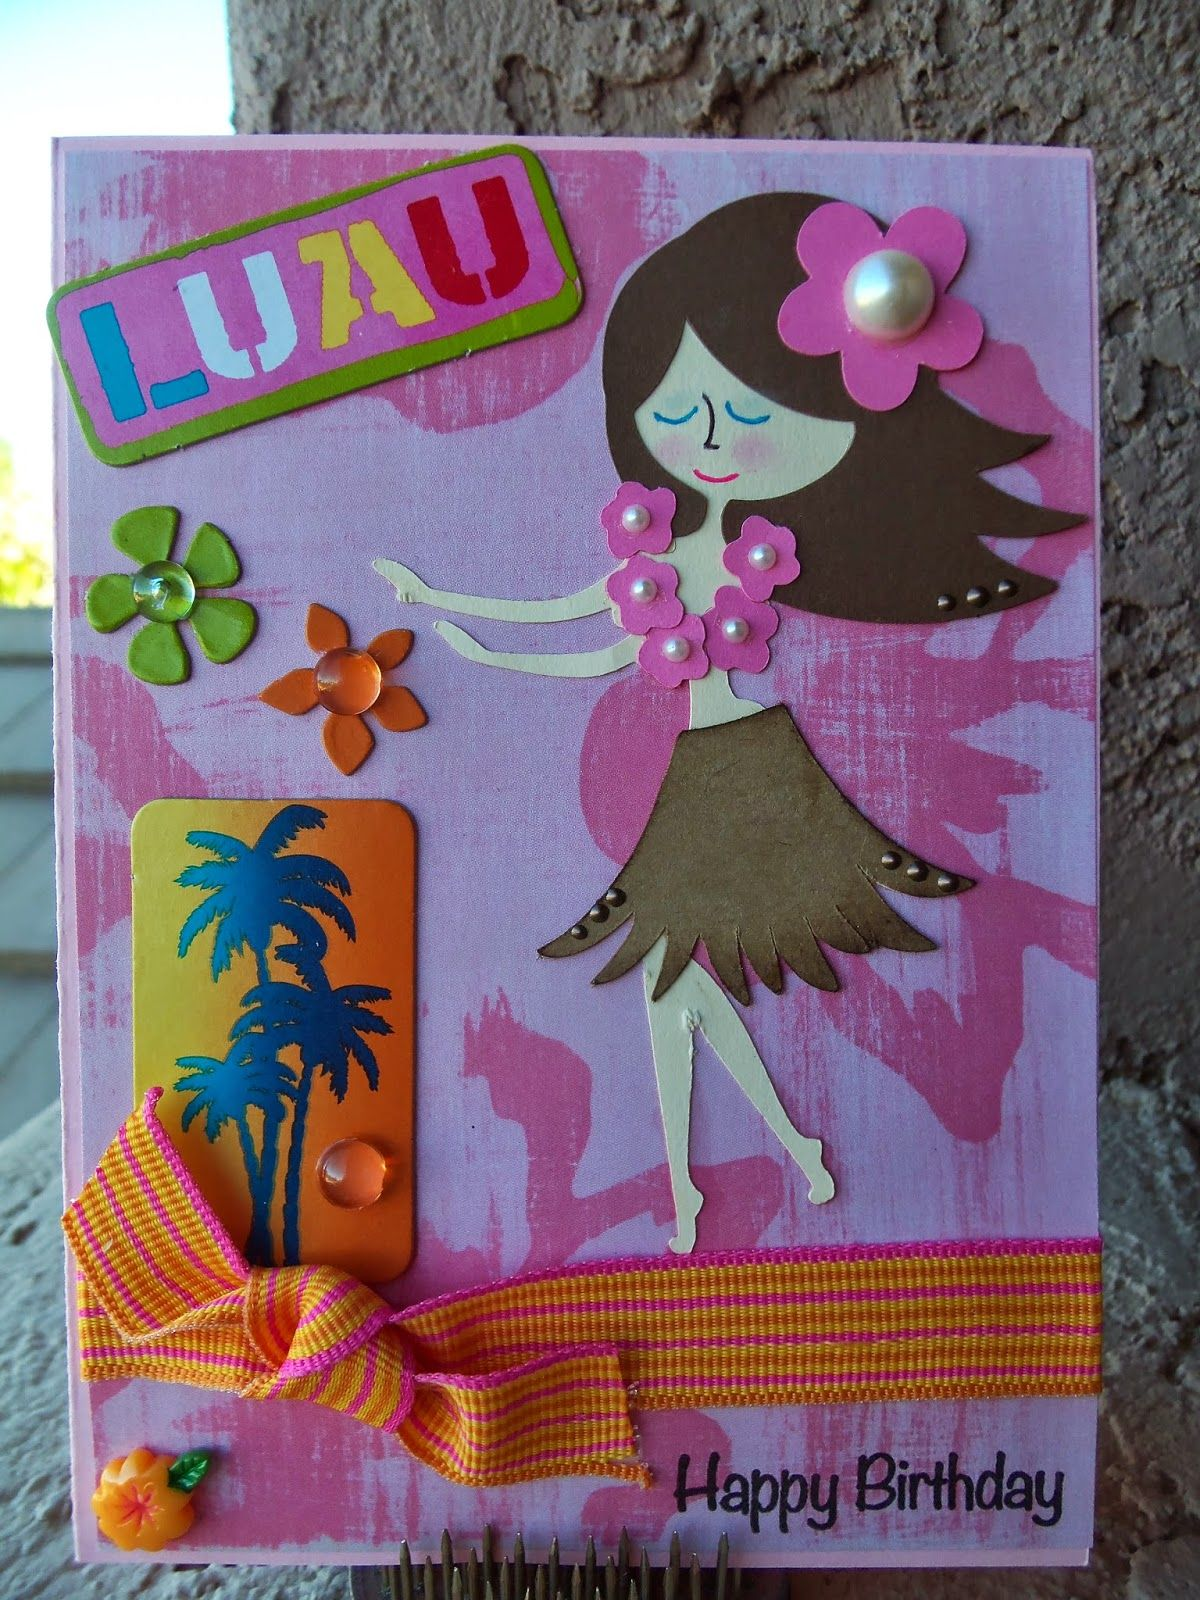 Doubleclick aka abusybee happy birthday luau hula girl new